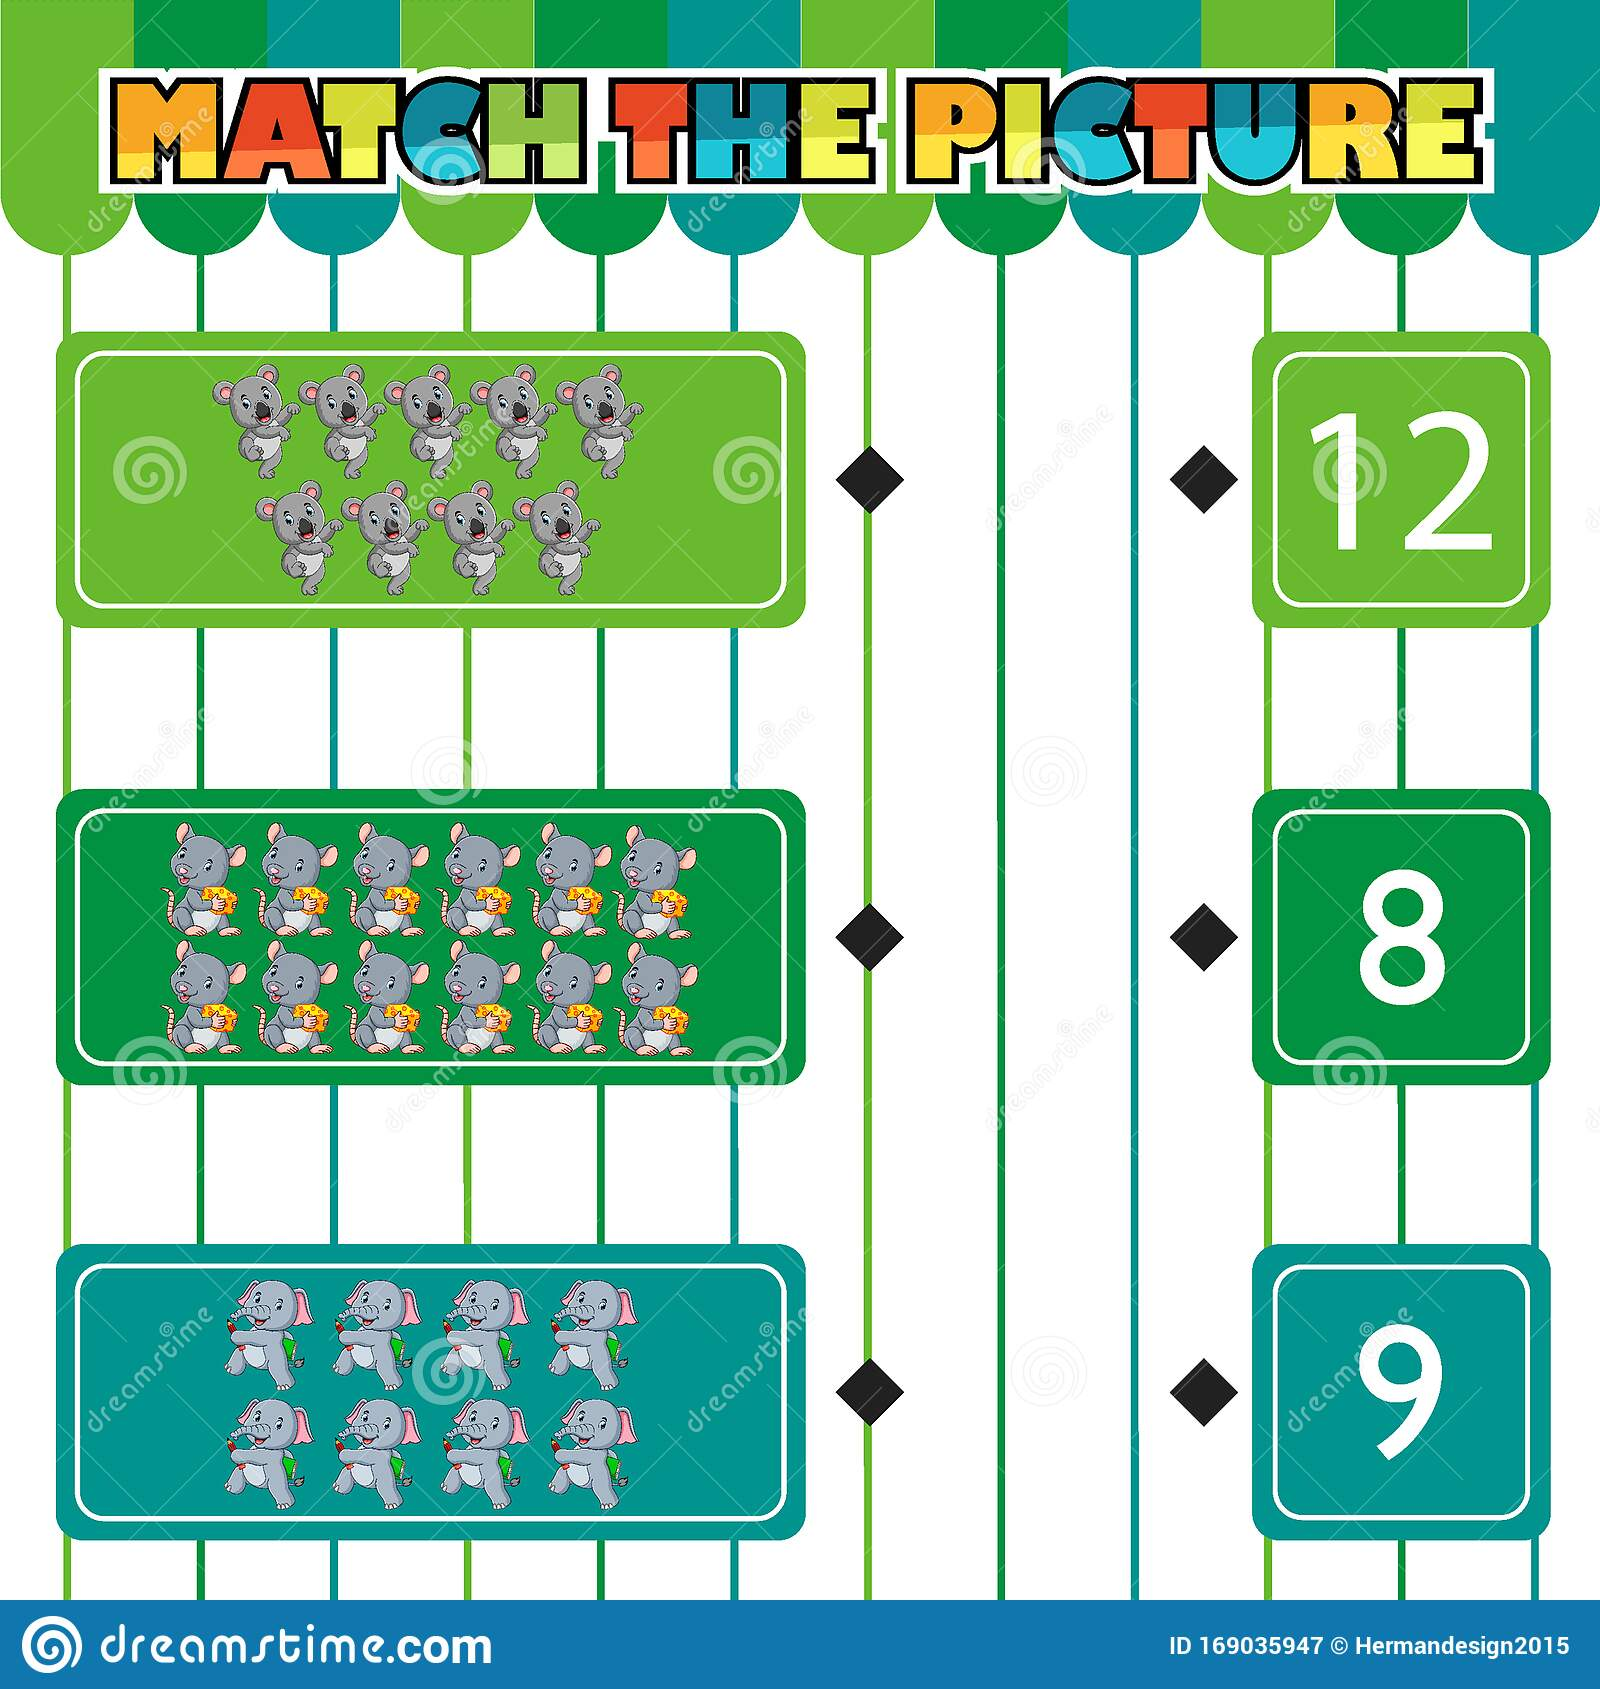 Worksheet For Children Counting And Connecting To Each